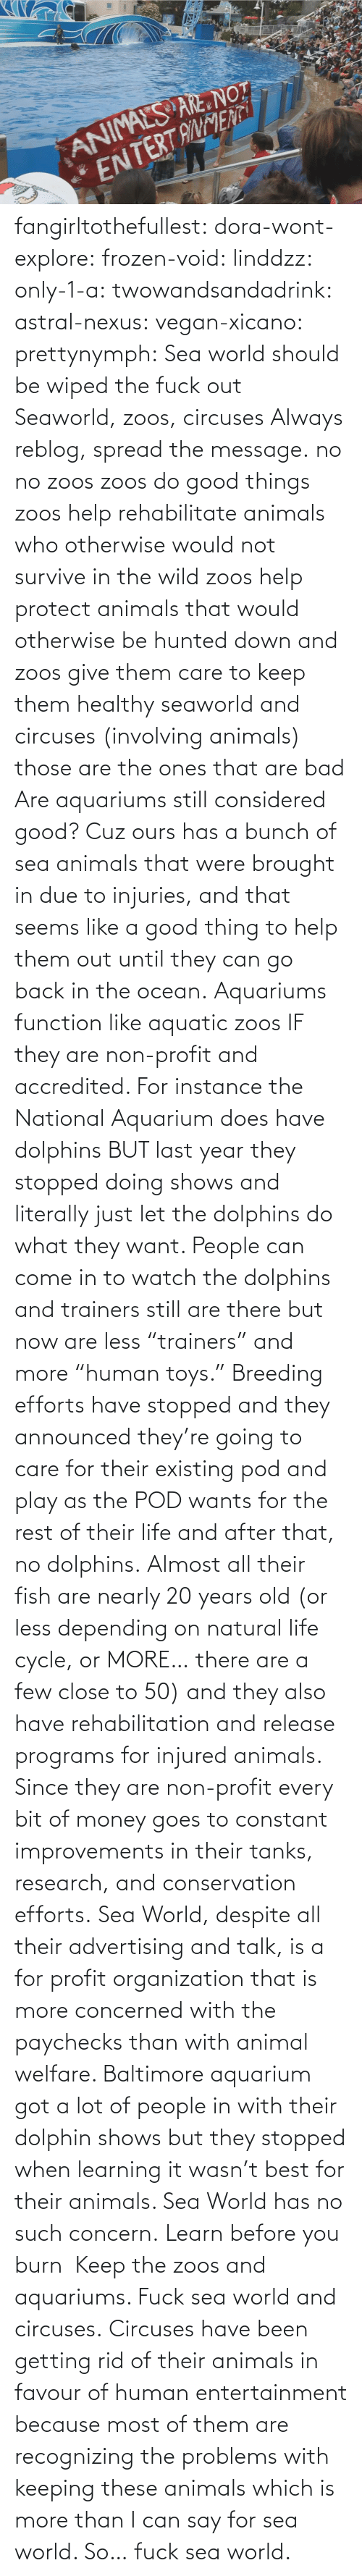 "The Rest: fangirltothefullest:  dora-wont-explore:  frozen-void:  linddzz:  only-1-a:  twowandsandadrink:  astral-nexus:  vegan-xicano:  prettynymph:  Sea world should be wiped the fuck out  Seaworld, zoos, circuses  Always reblog, spread the message.  no no zoos zoos do good things zoos help rehabilitate animals who otherwise would not survive in the wild zoos help protect animals that would otherwise be hunted down and zoos give them care to keep them healthy seaworld and circuses (involving animals) those are the ones that are bad  Are aquariums still considered good? Cuz ours has a bunch of sea animals that were brought in due to injuries, and that seems like a good thing to help them out until they can go back in the ocean.  Aquariums function like aquatic zoos IF they are non-profit and accredited. For instance the National Aquarium does have dolphins BUT last year they stopped doing shows and literally just let the dolphins do what they want. People can come in to watch the dolphins and trainers still are there but now are less ""trainers"" and more ""human toys."" Breeding efforts have stopped and they announced they're going to care for their existing pod and play as the POD wants for the rest of their life and after that, no dolphins. Almost all their fish are nearly 20 years old (or less depending on natural life cycle, or MORE… there are a few close to 50) and they also have rehabilitation and release programs for injured animals. Since they are non-profit every bit of money goes to constant improvements in their tanks, research, and conservation efforts. Sea World, despite all their advertising and talk, is a for profit organization that is more concerned with the paychecks than with animal welfare. Baltimore aquarium got a lot of people in with their dolphin shows but they stopped when learning it wasn't best for their animals. Sea World has no such concern.  Learn before you burn   Keep the zoos and aquariums. Fuck sea world and circuses.  Circuses have been getting rid of  their animals in favour of human entertainment because most of them are recognizing the problems with keeping these animals which is more than I can say for sea world. So… fuck sea world."